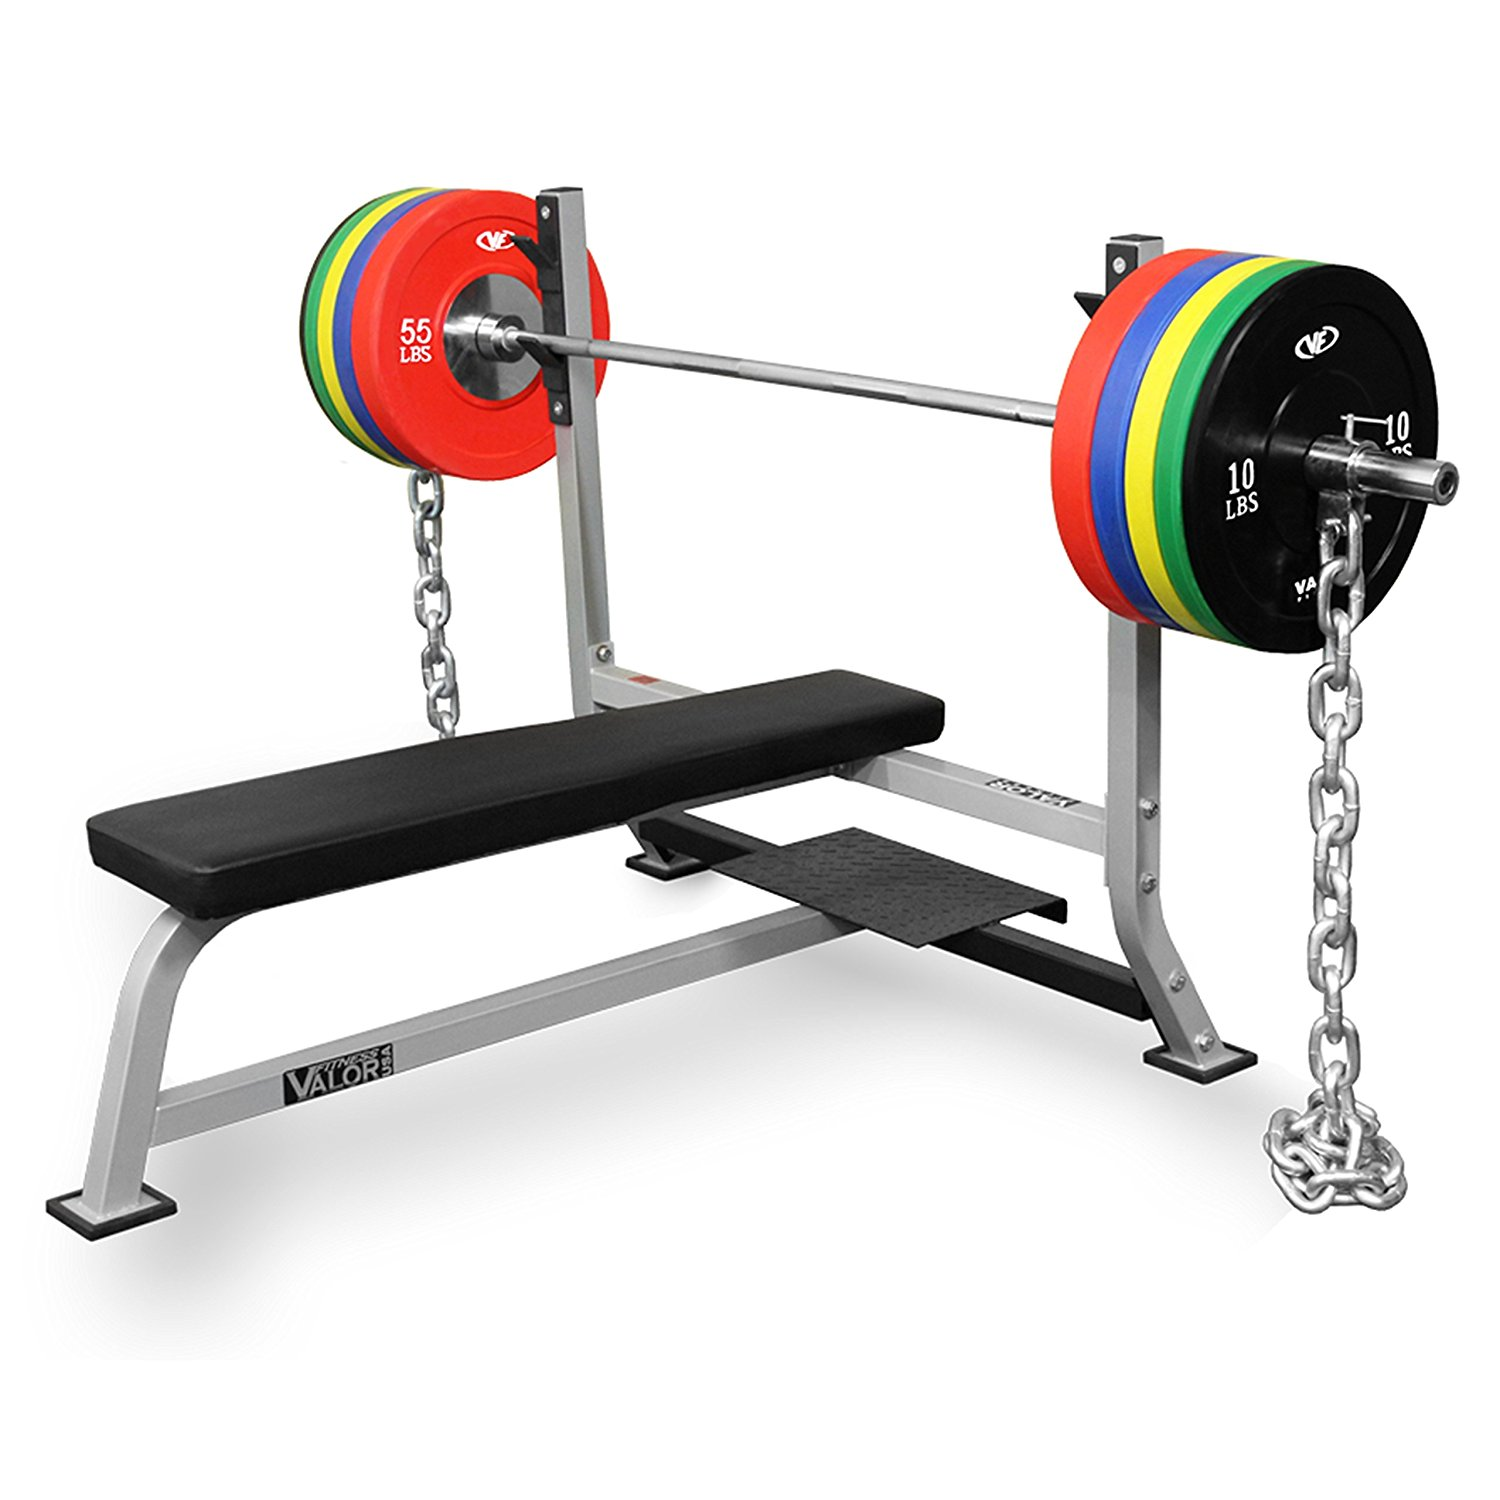 Valor Fitness BF-7 Olympic Bench with Spotter